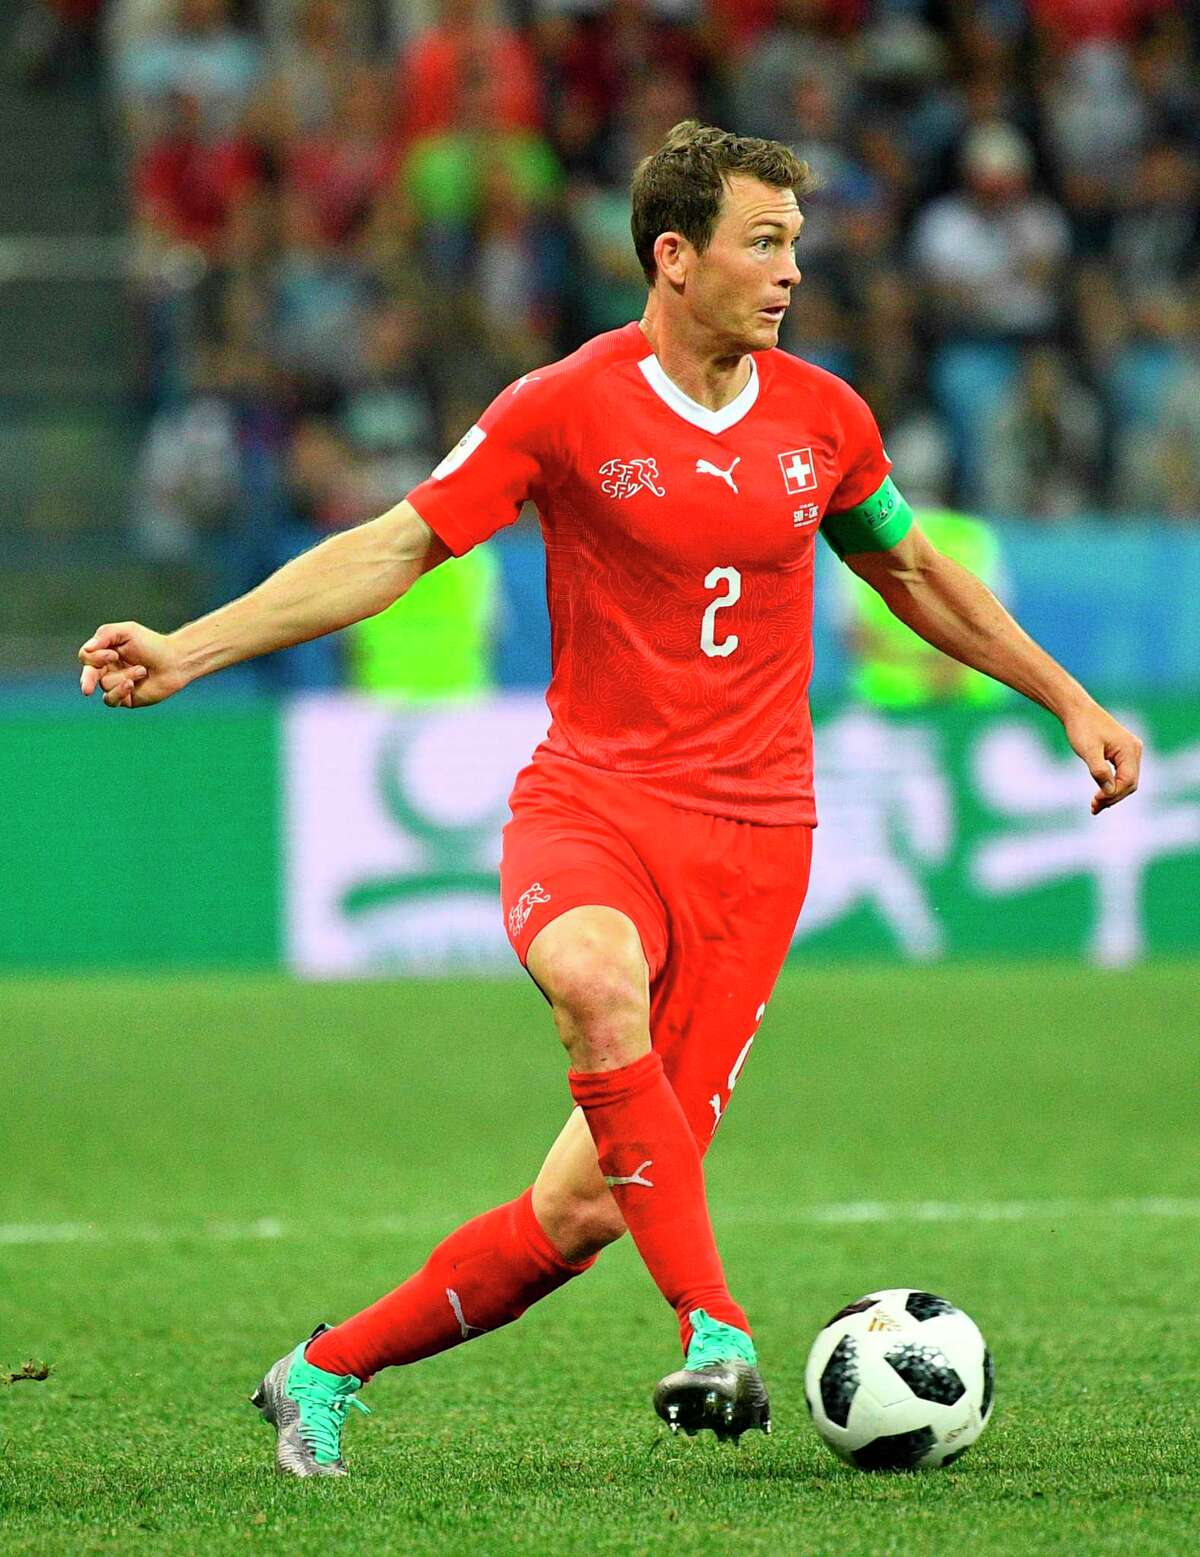 Switzerland's defender Stephan Lichtsteiner controls the ball during the Russia 2018 World Cup Group E football match between Switzerland and Costa Rica at the Nizhny Novgorod Stadium in Nizhny Novgorod on June 27, 2018. / AFP PHOTO / Johannes EISELE / RESTRICTED TO EDITORIAL USE - NO MOBILE PUSH ALERTS/DOWNLOADSJOHANNES EISELE/AFP/Getty Images